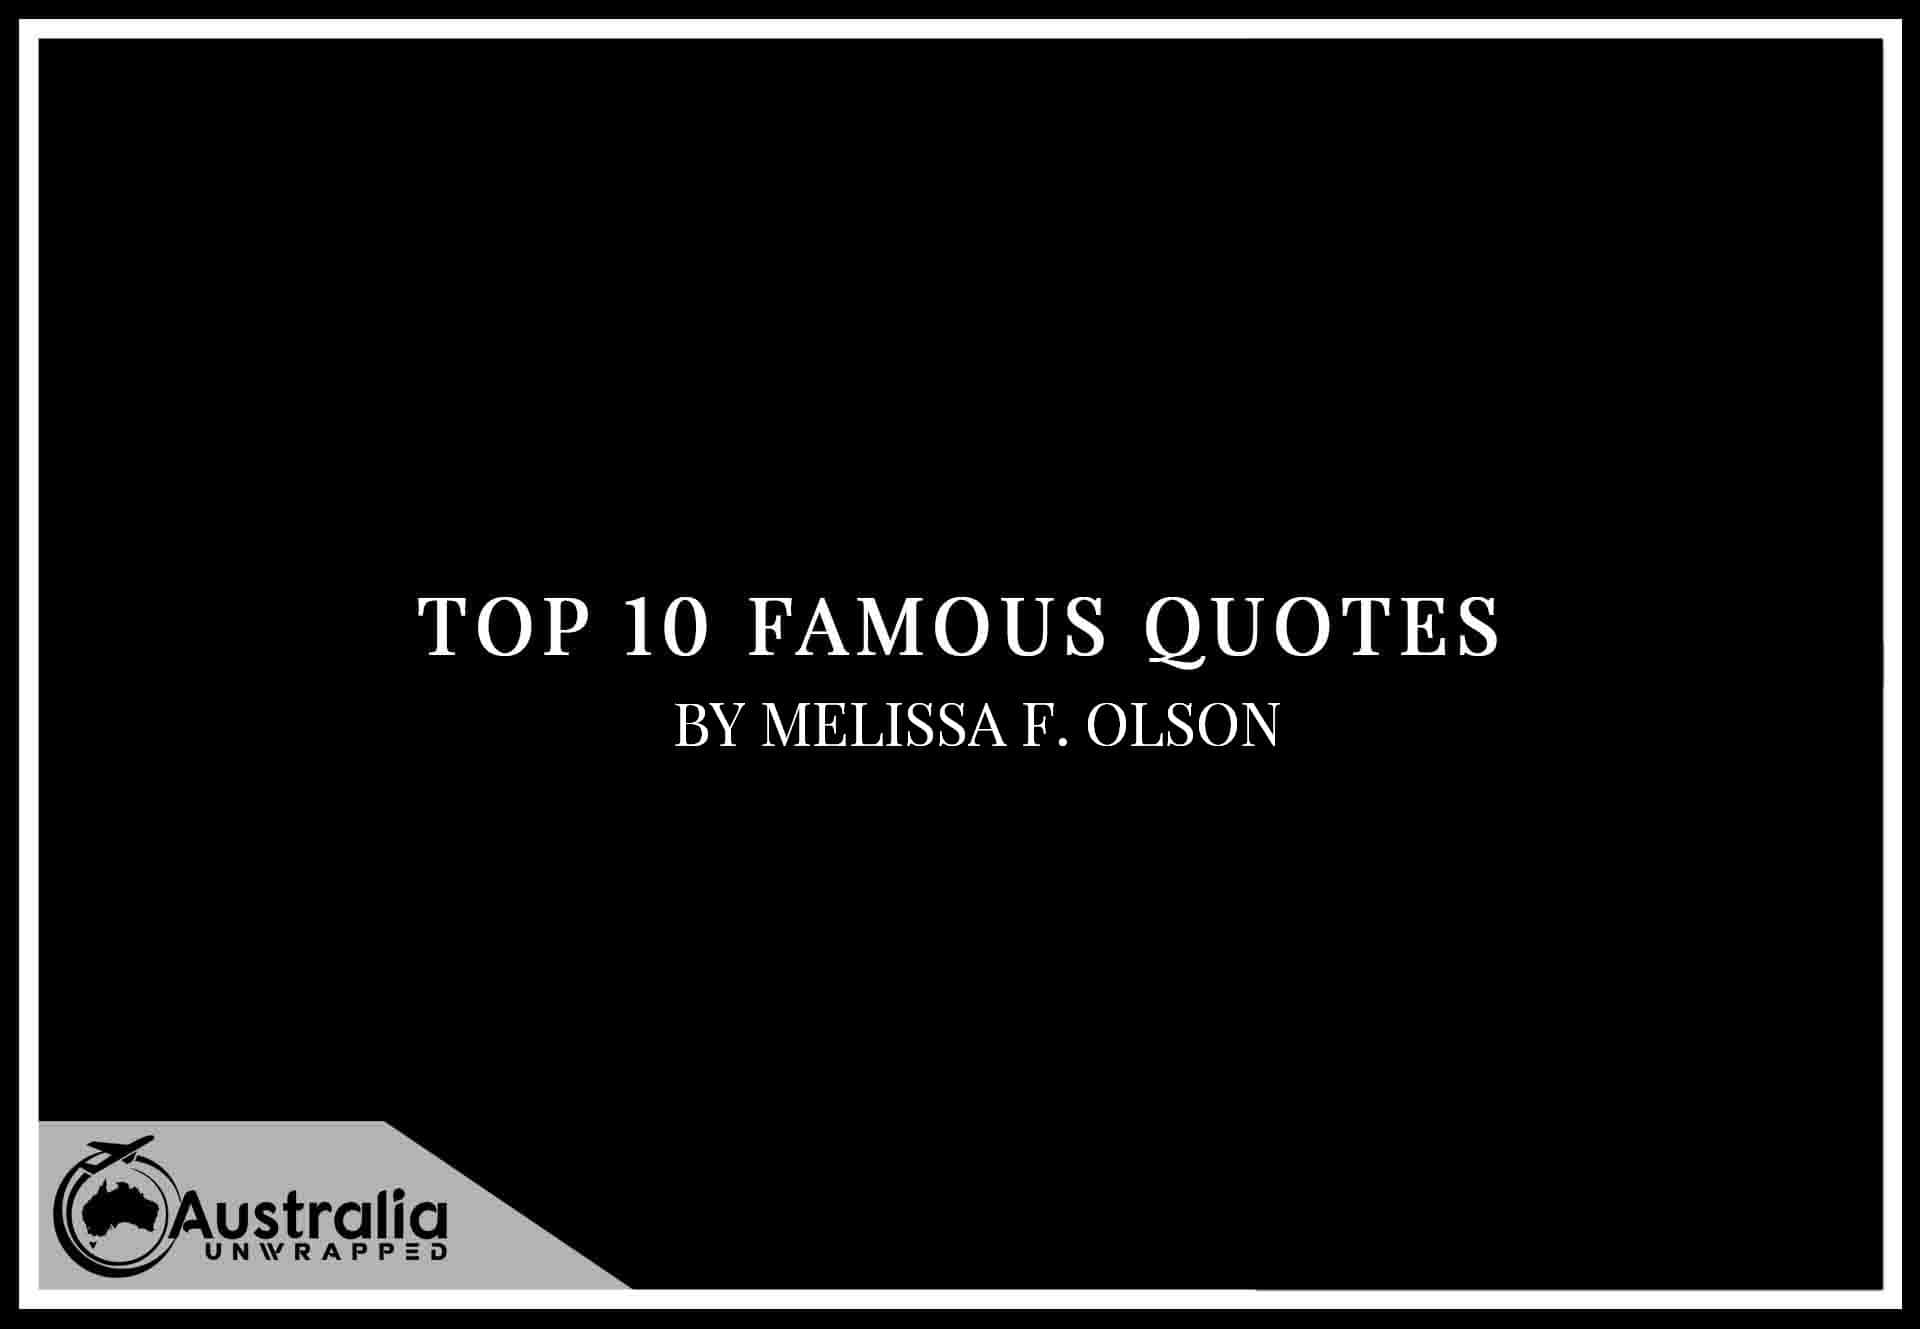 Top 10 Famous Quotes by Author Melissa F. Olson